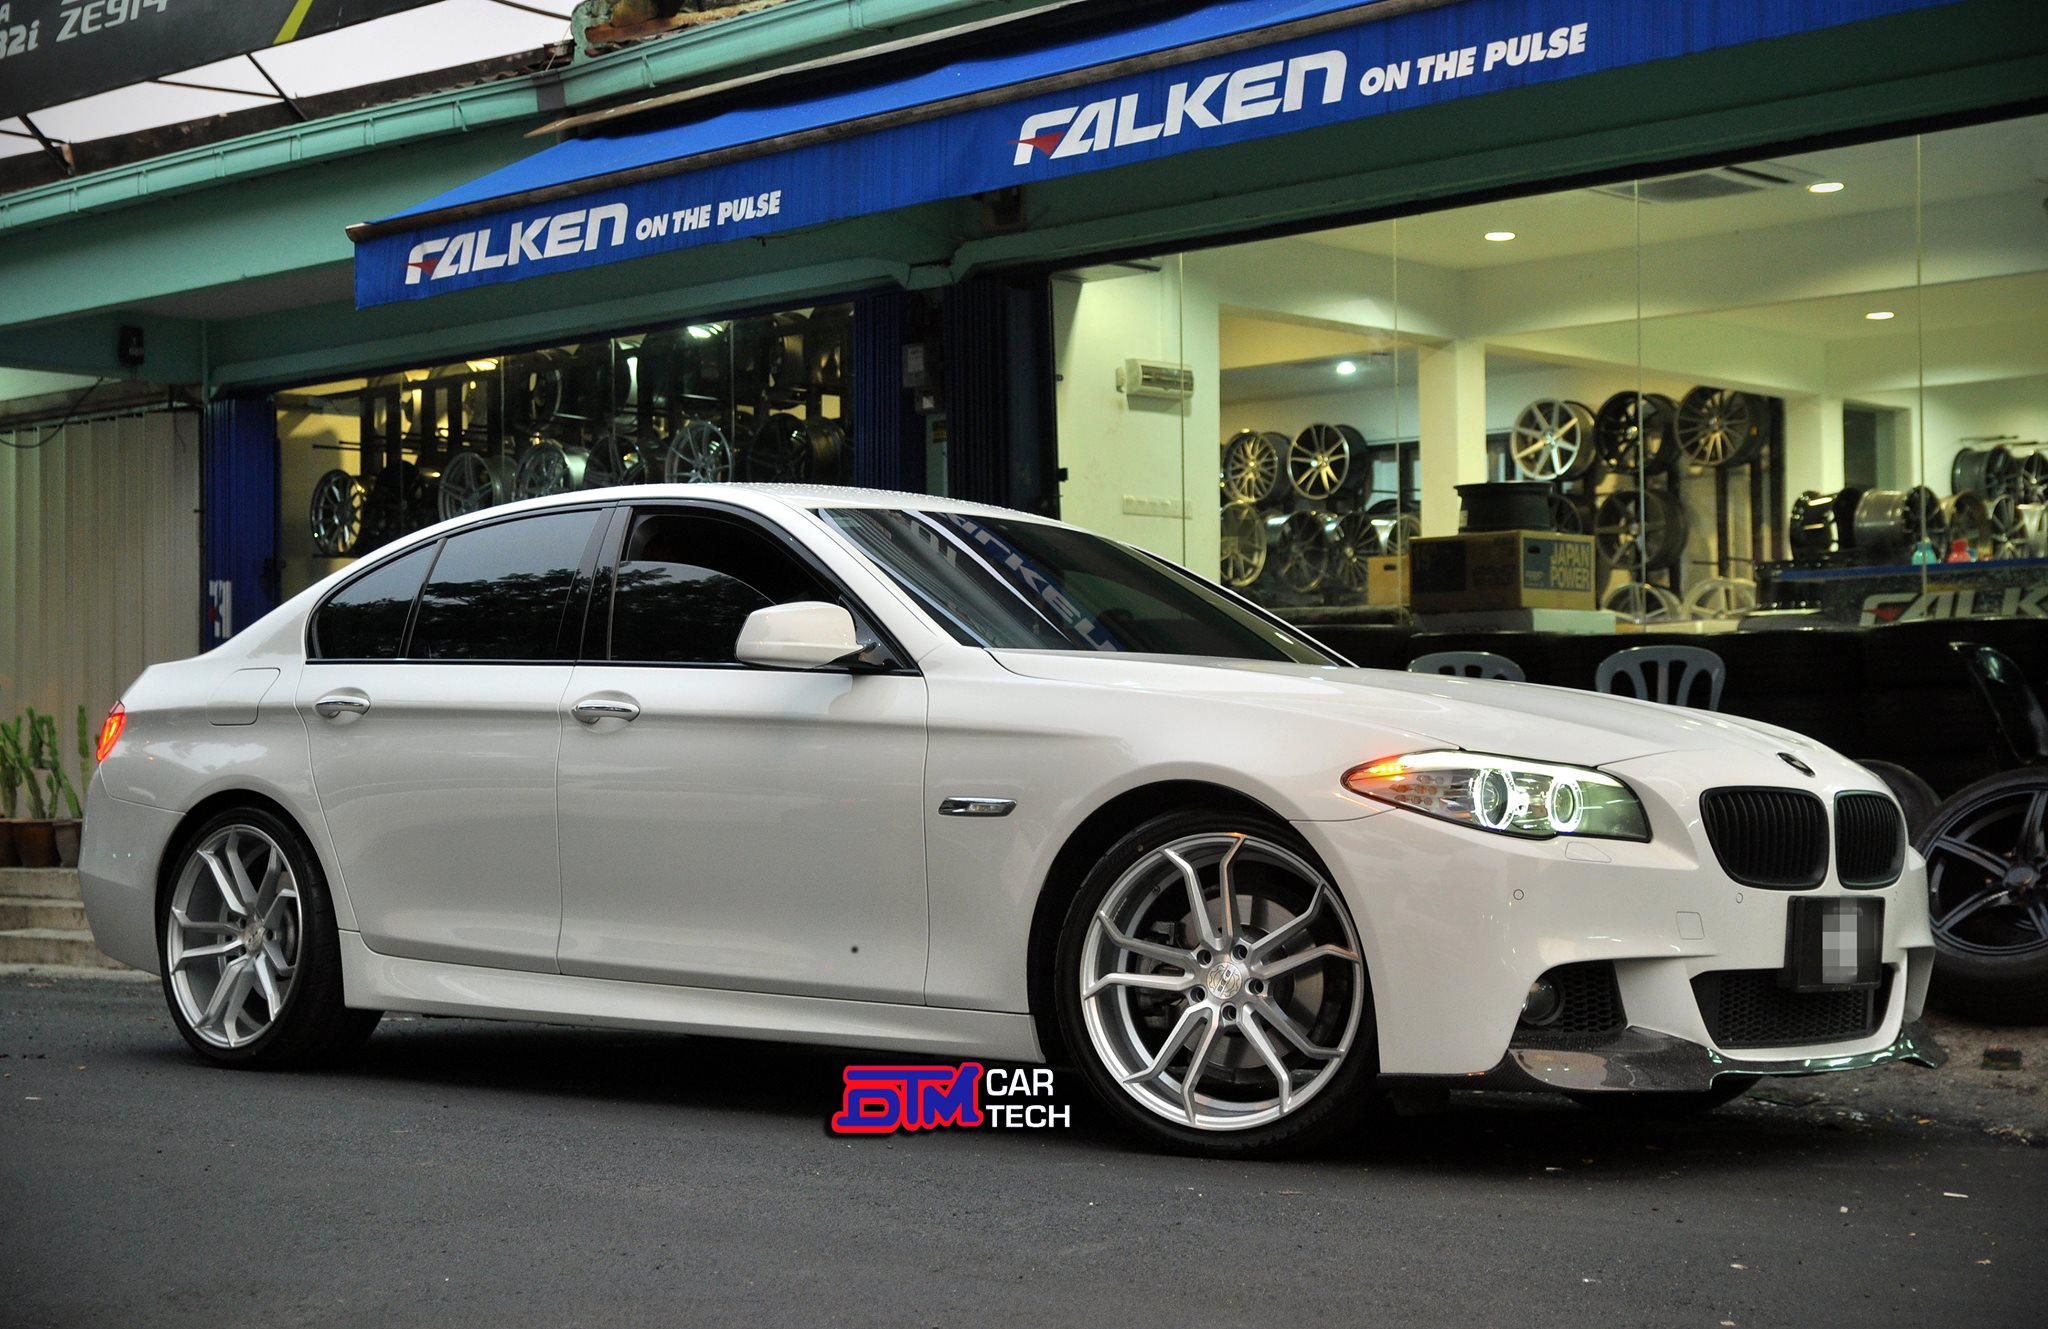 BMW 5 Series Silver Rims Varro Staggered Wheels VD02